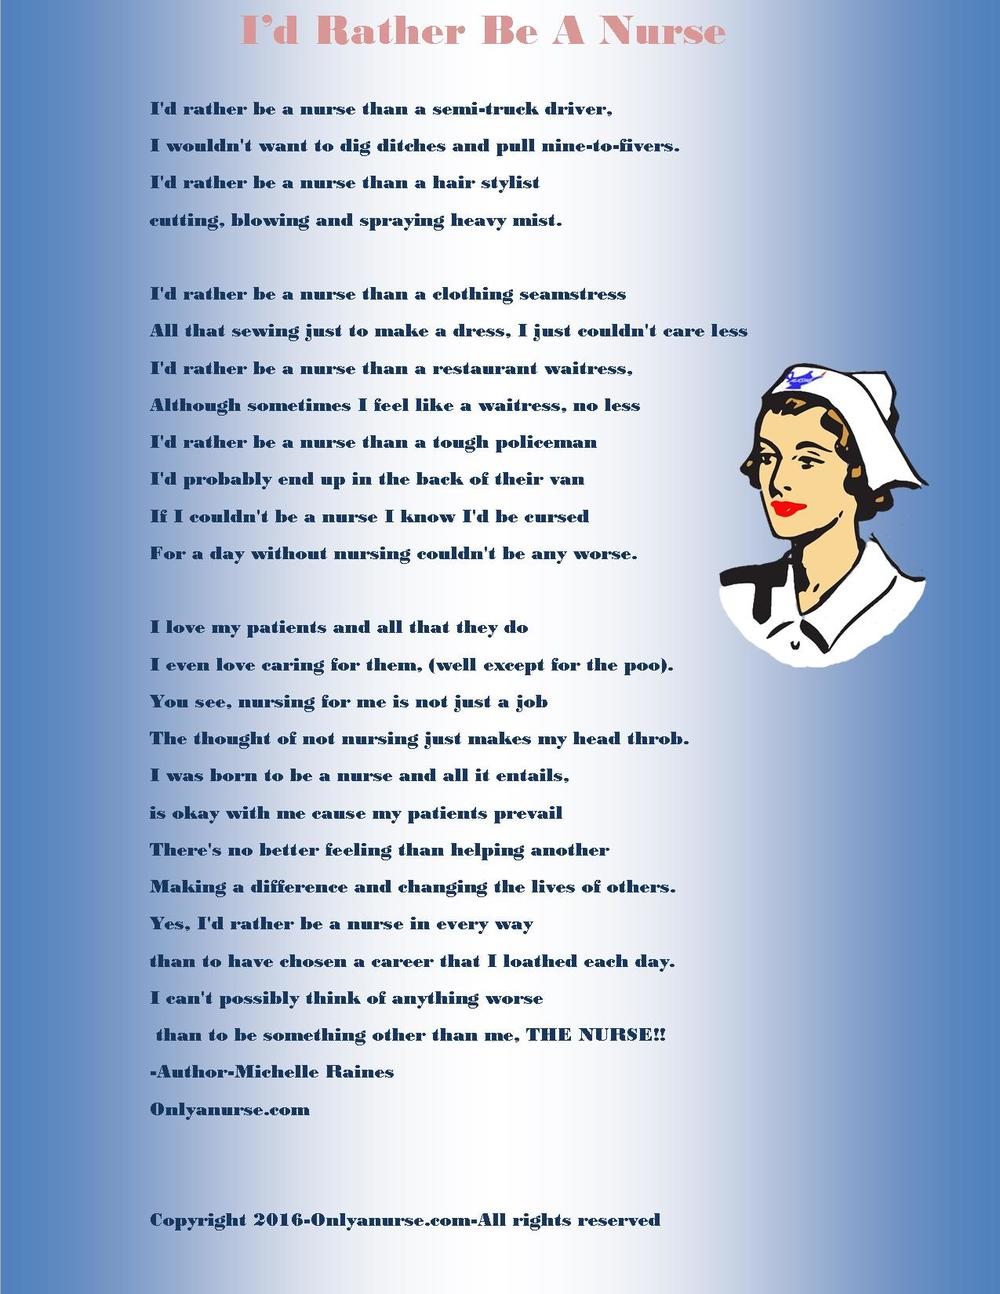 I'd rather be a nurse poem